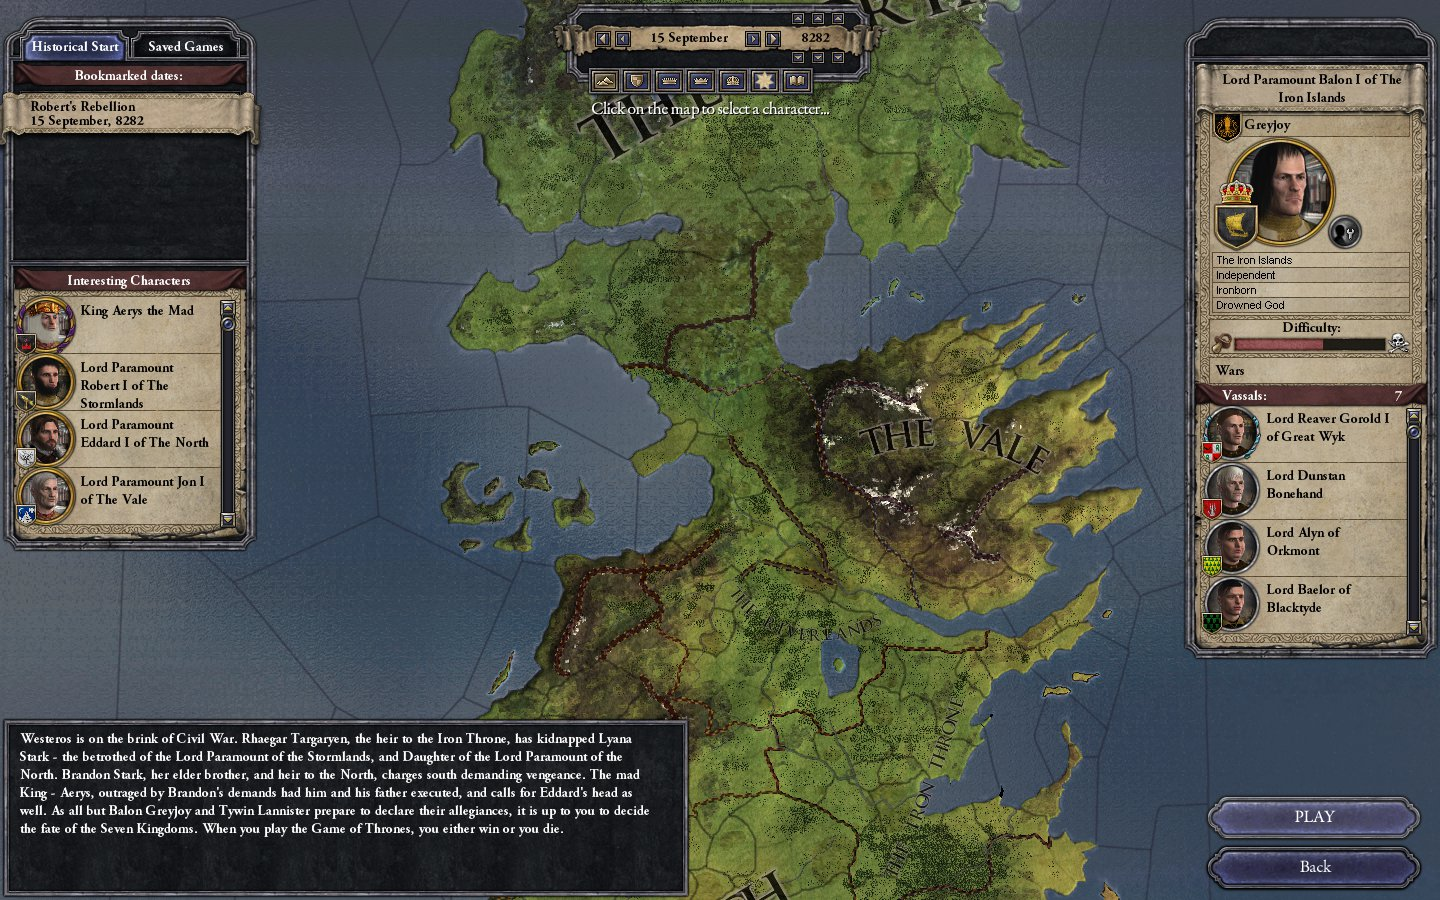 Crusader kings 2 game of thrones mod littlefinger